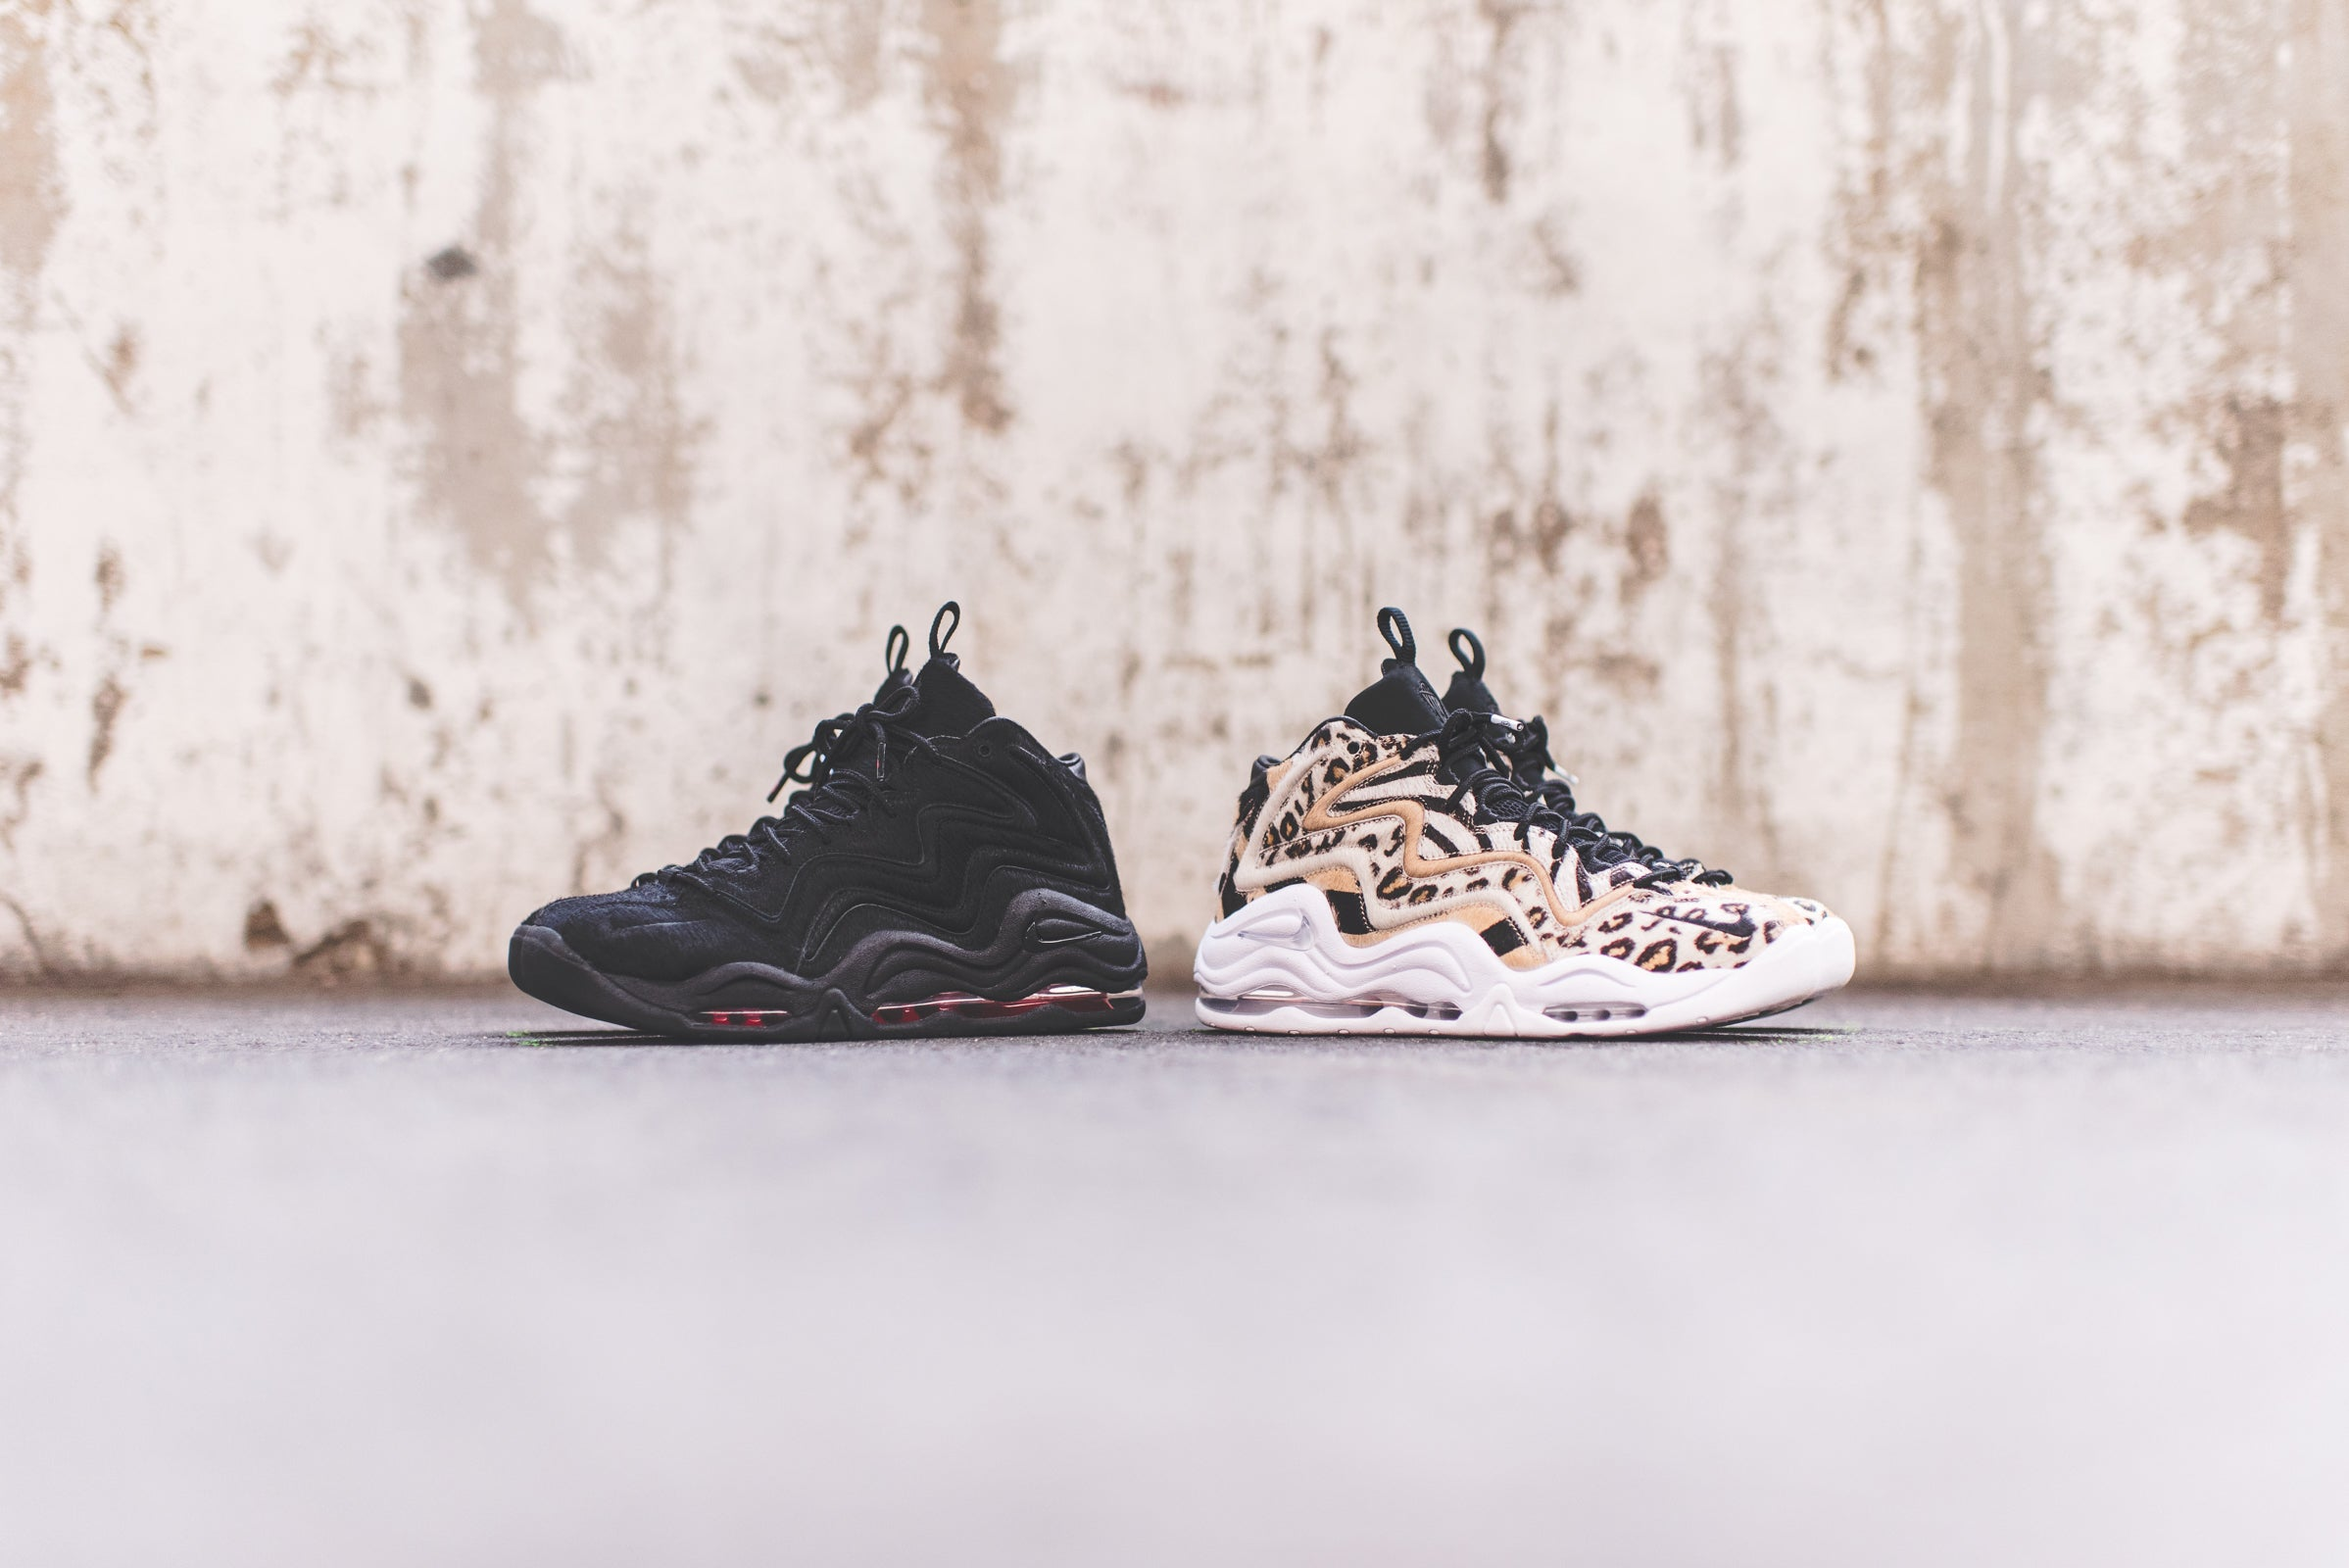 b5a462a5a25 Kith x Nike Air Pippen 1 Collection. October 03